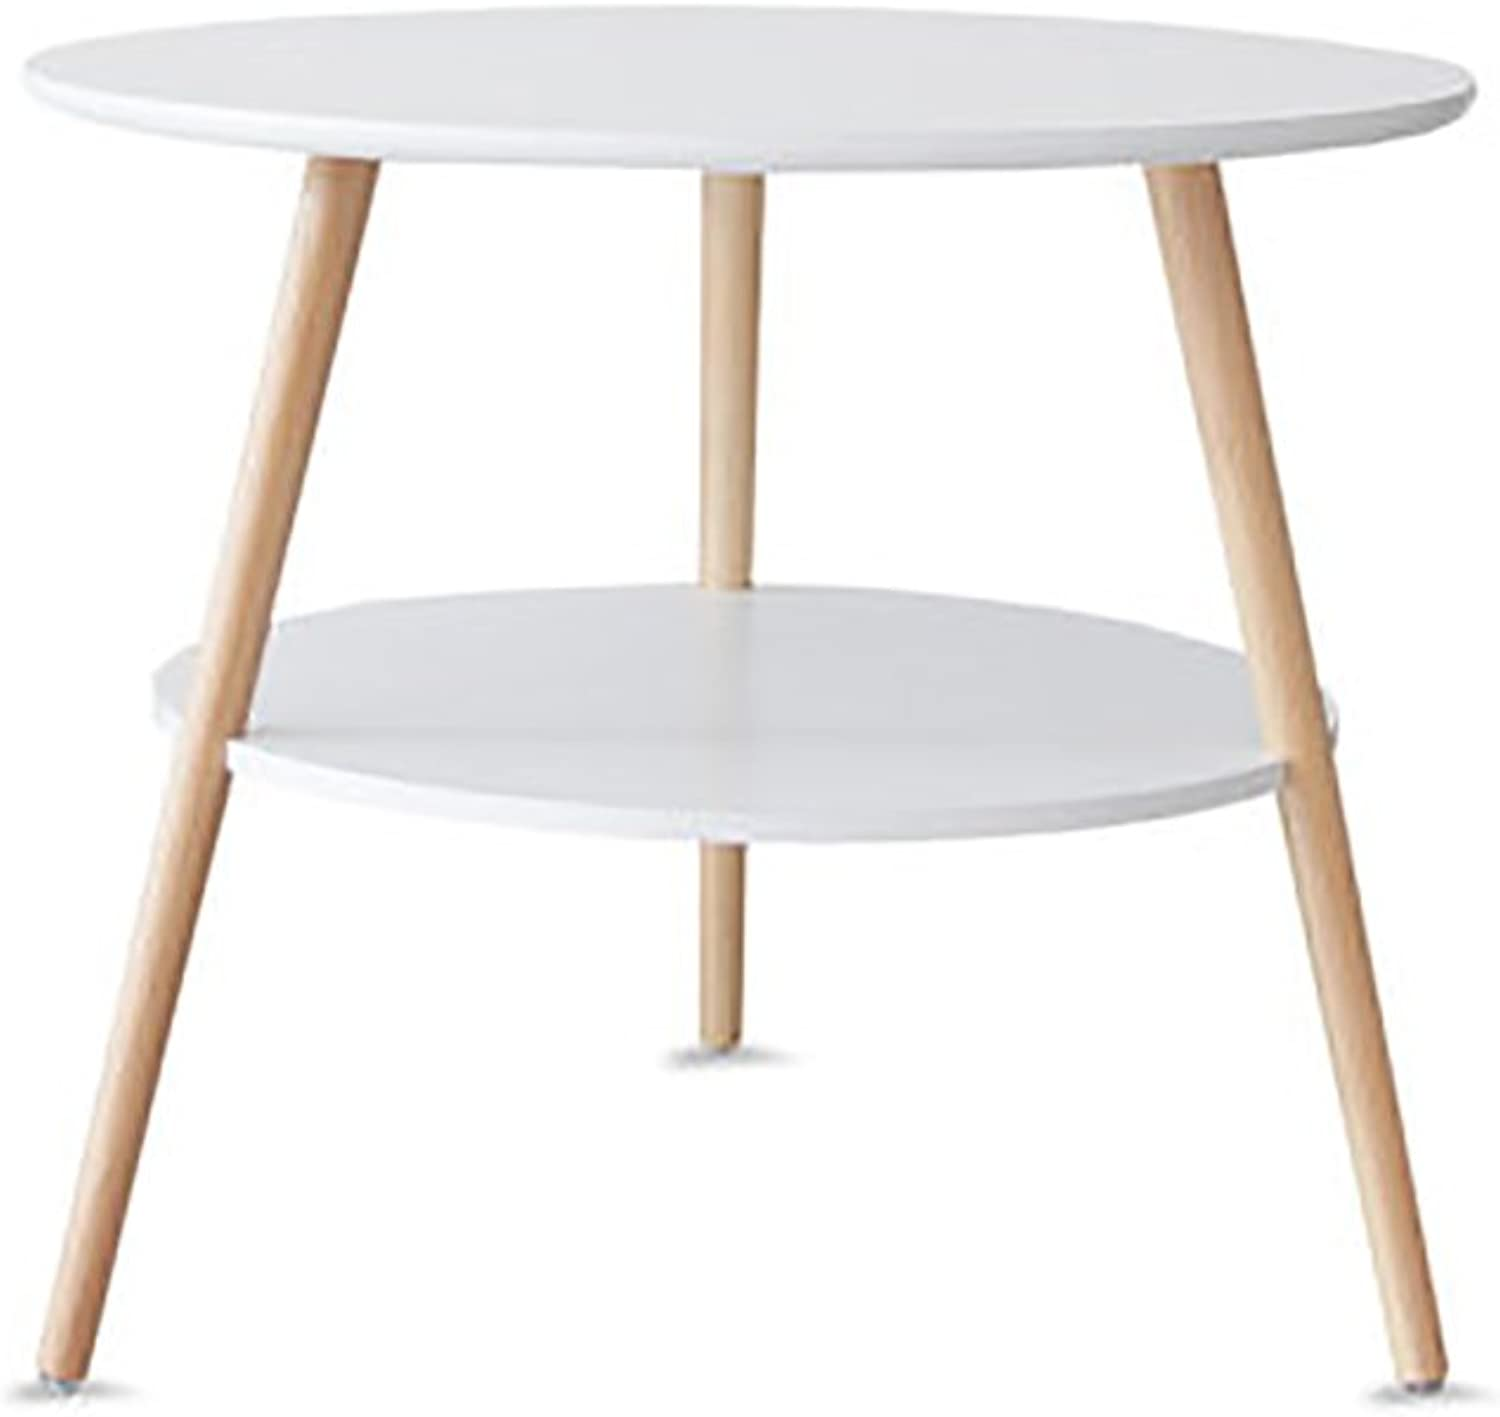 Wood Simple Round Side Table,Double Layer Living Room Sofa Table Coffee Table Bedroom Night Table Telephone Table-White 40X40cm